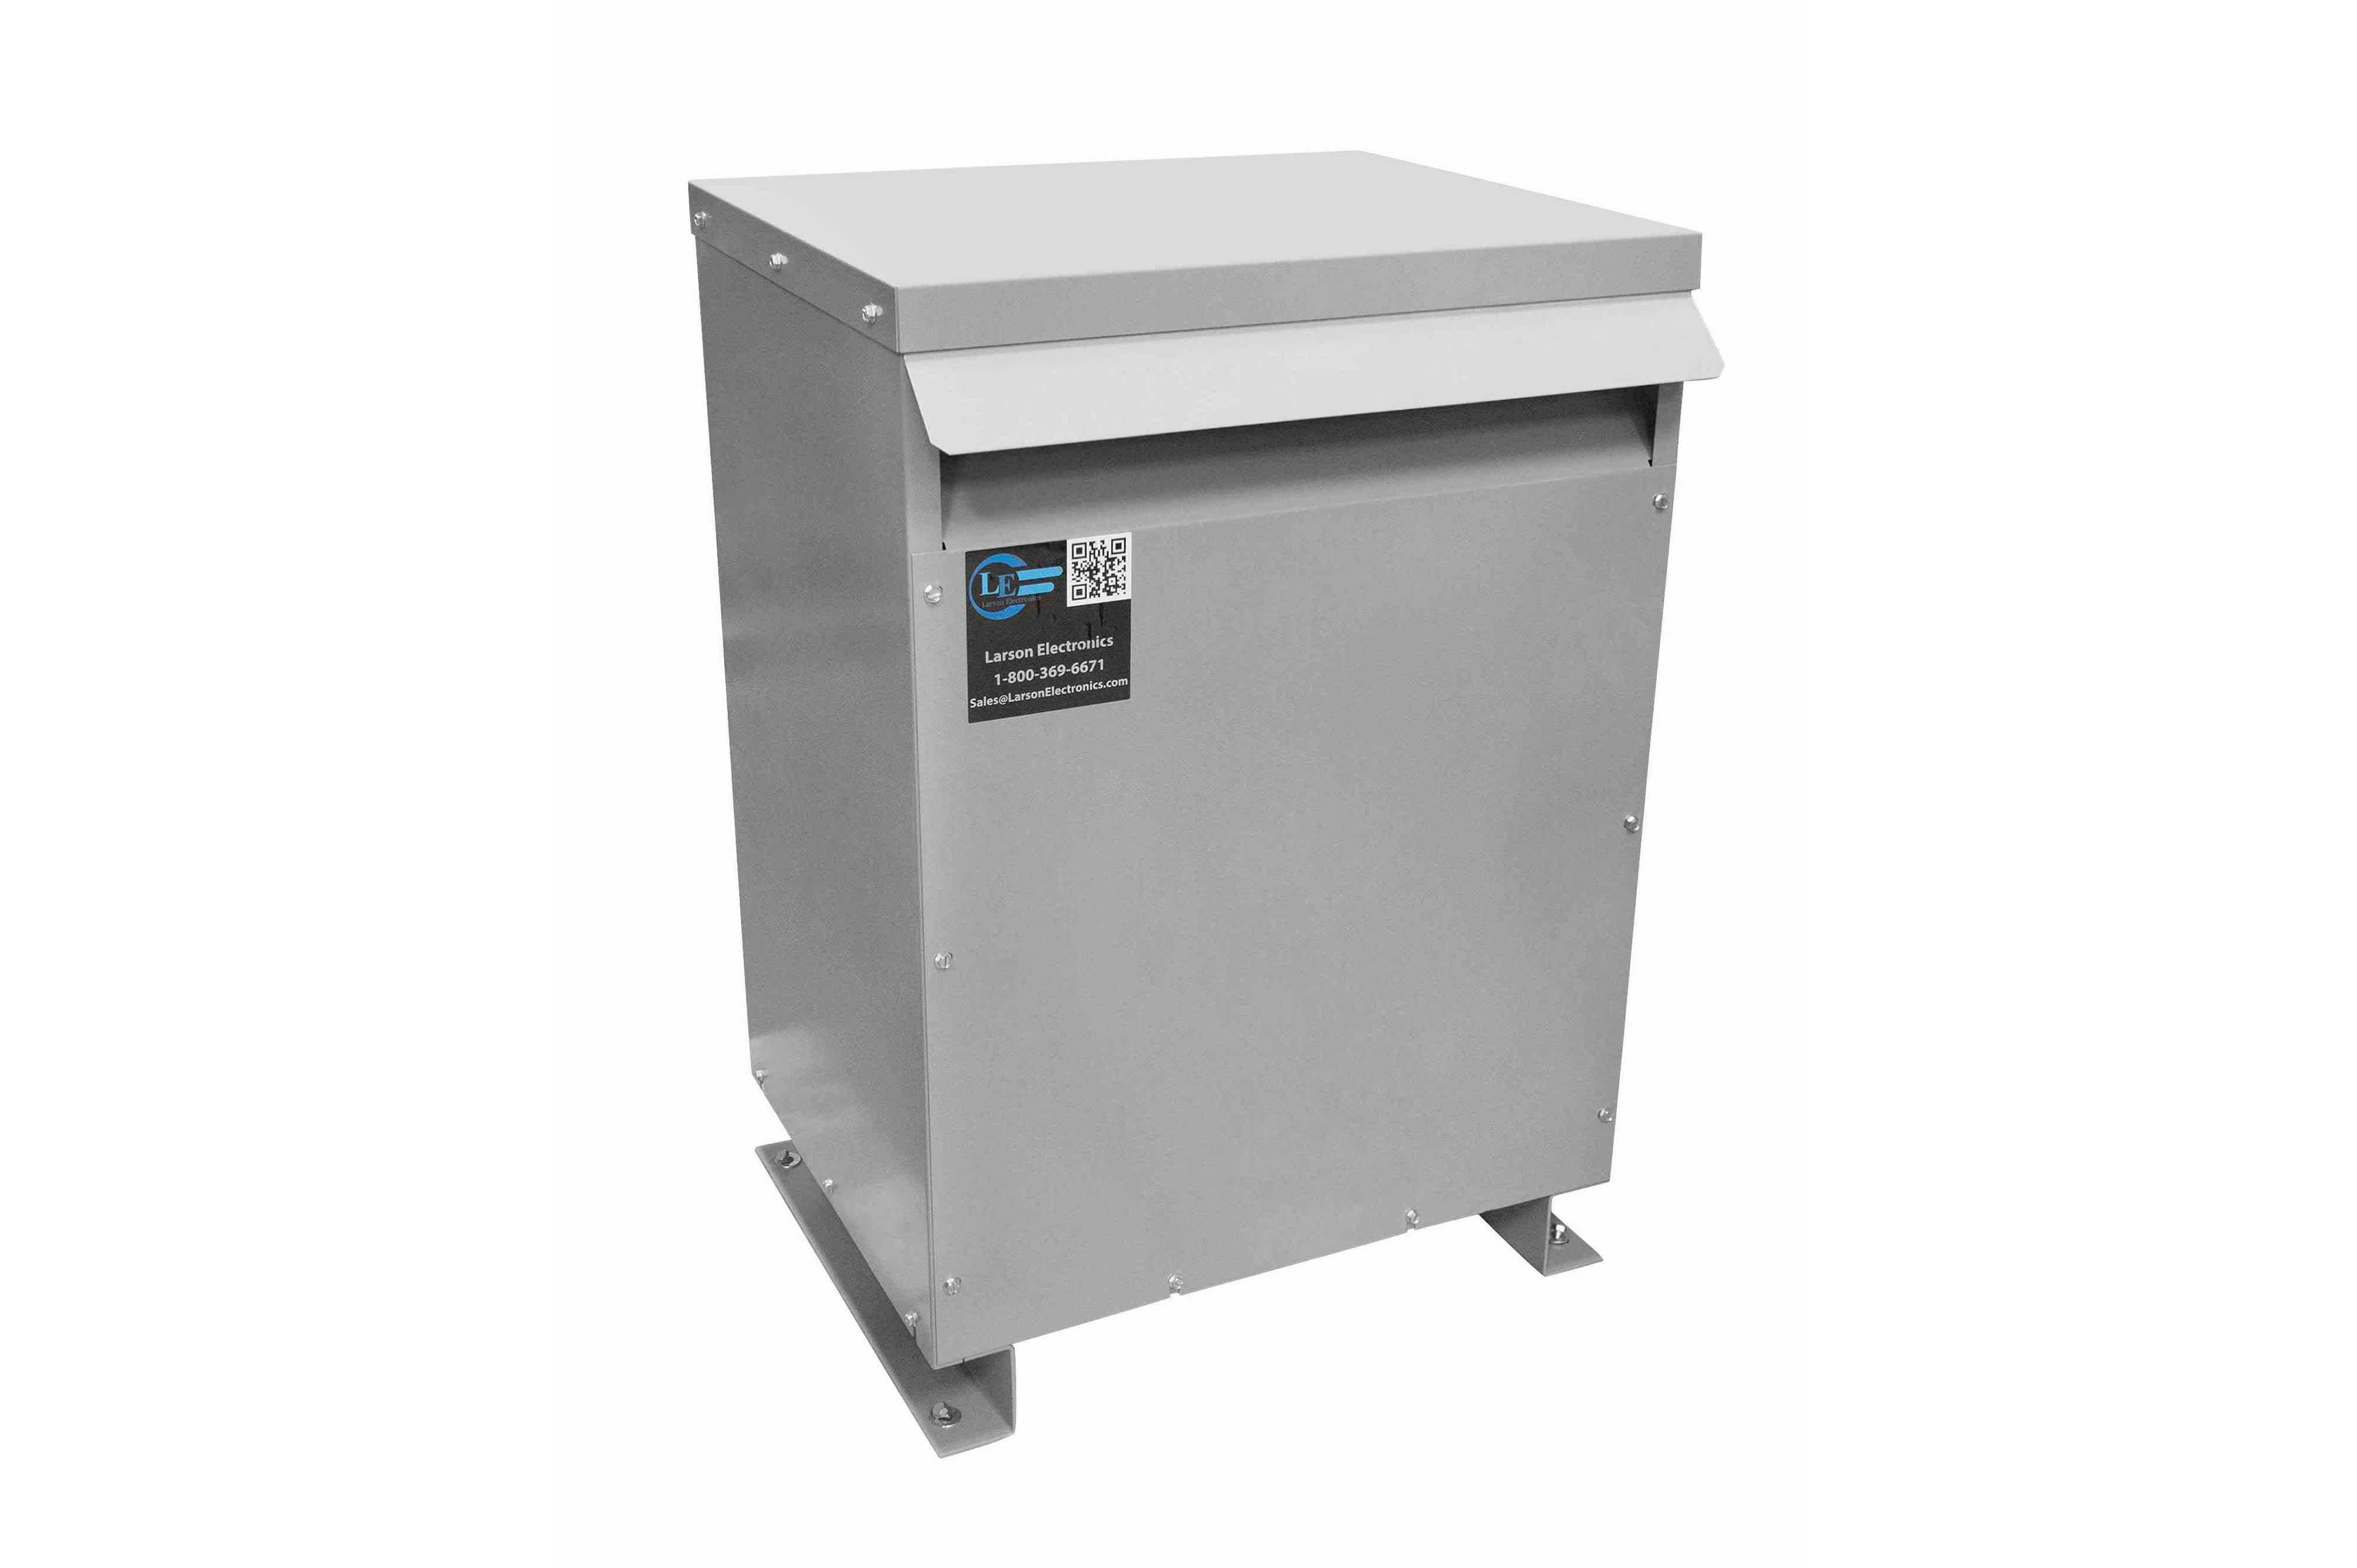 900 kVA 3PH Isolation Transformer, 400V Delta Primary, 600V Delta Secondary, N3R, Ventilated, 60 Hz